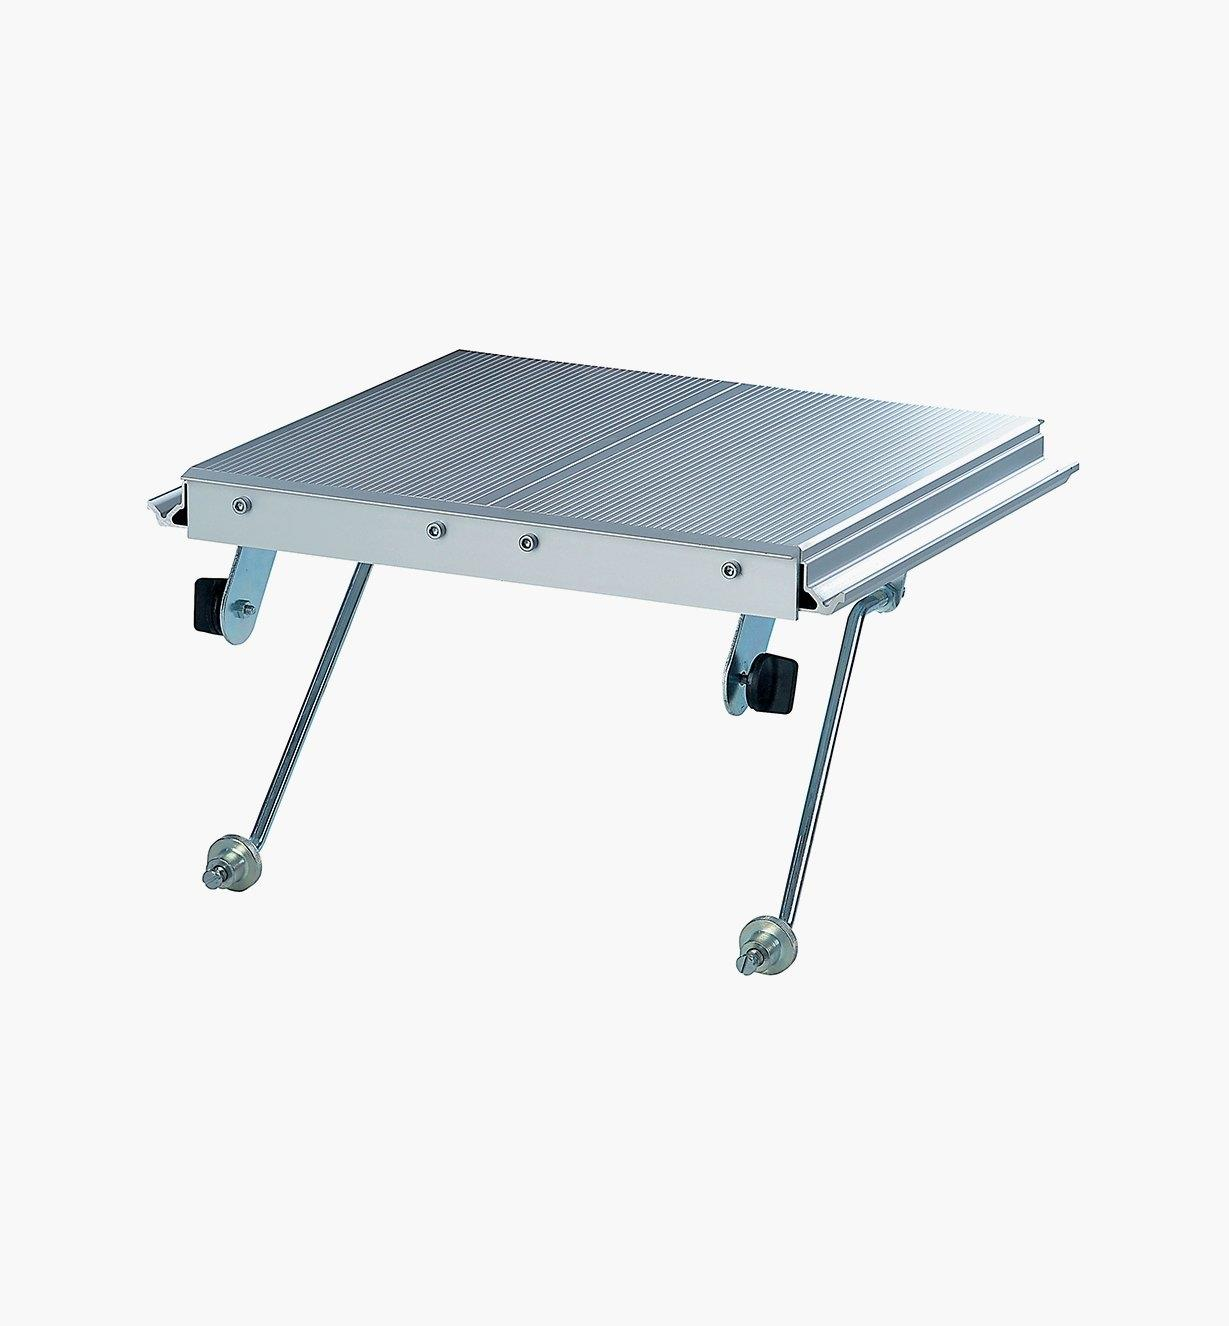 ZA492092 - Table Extension